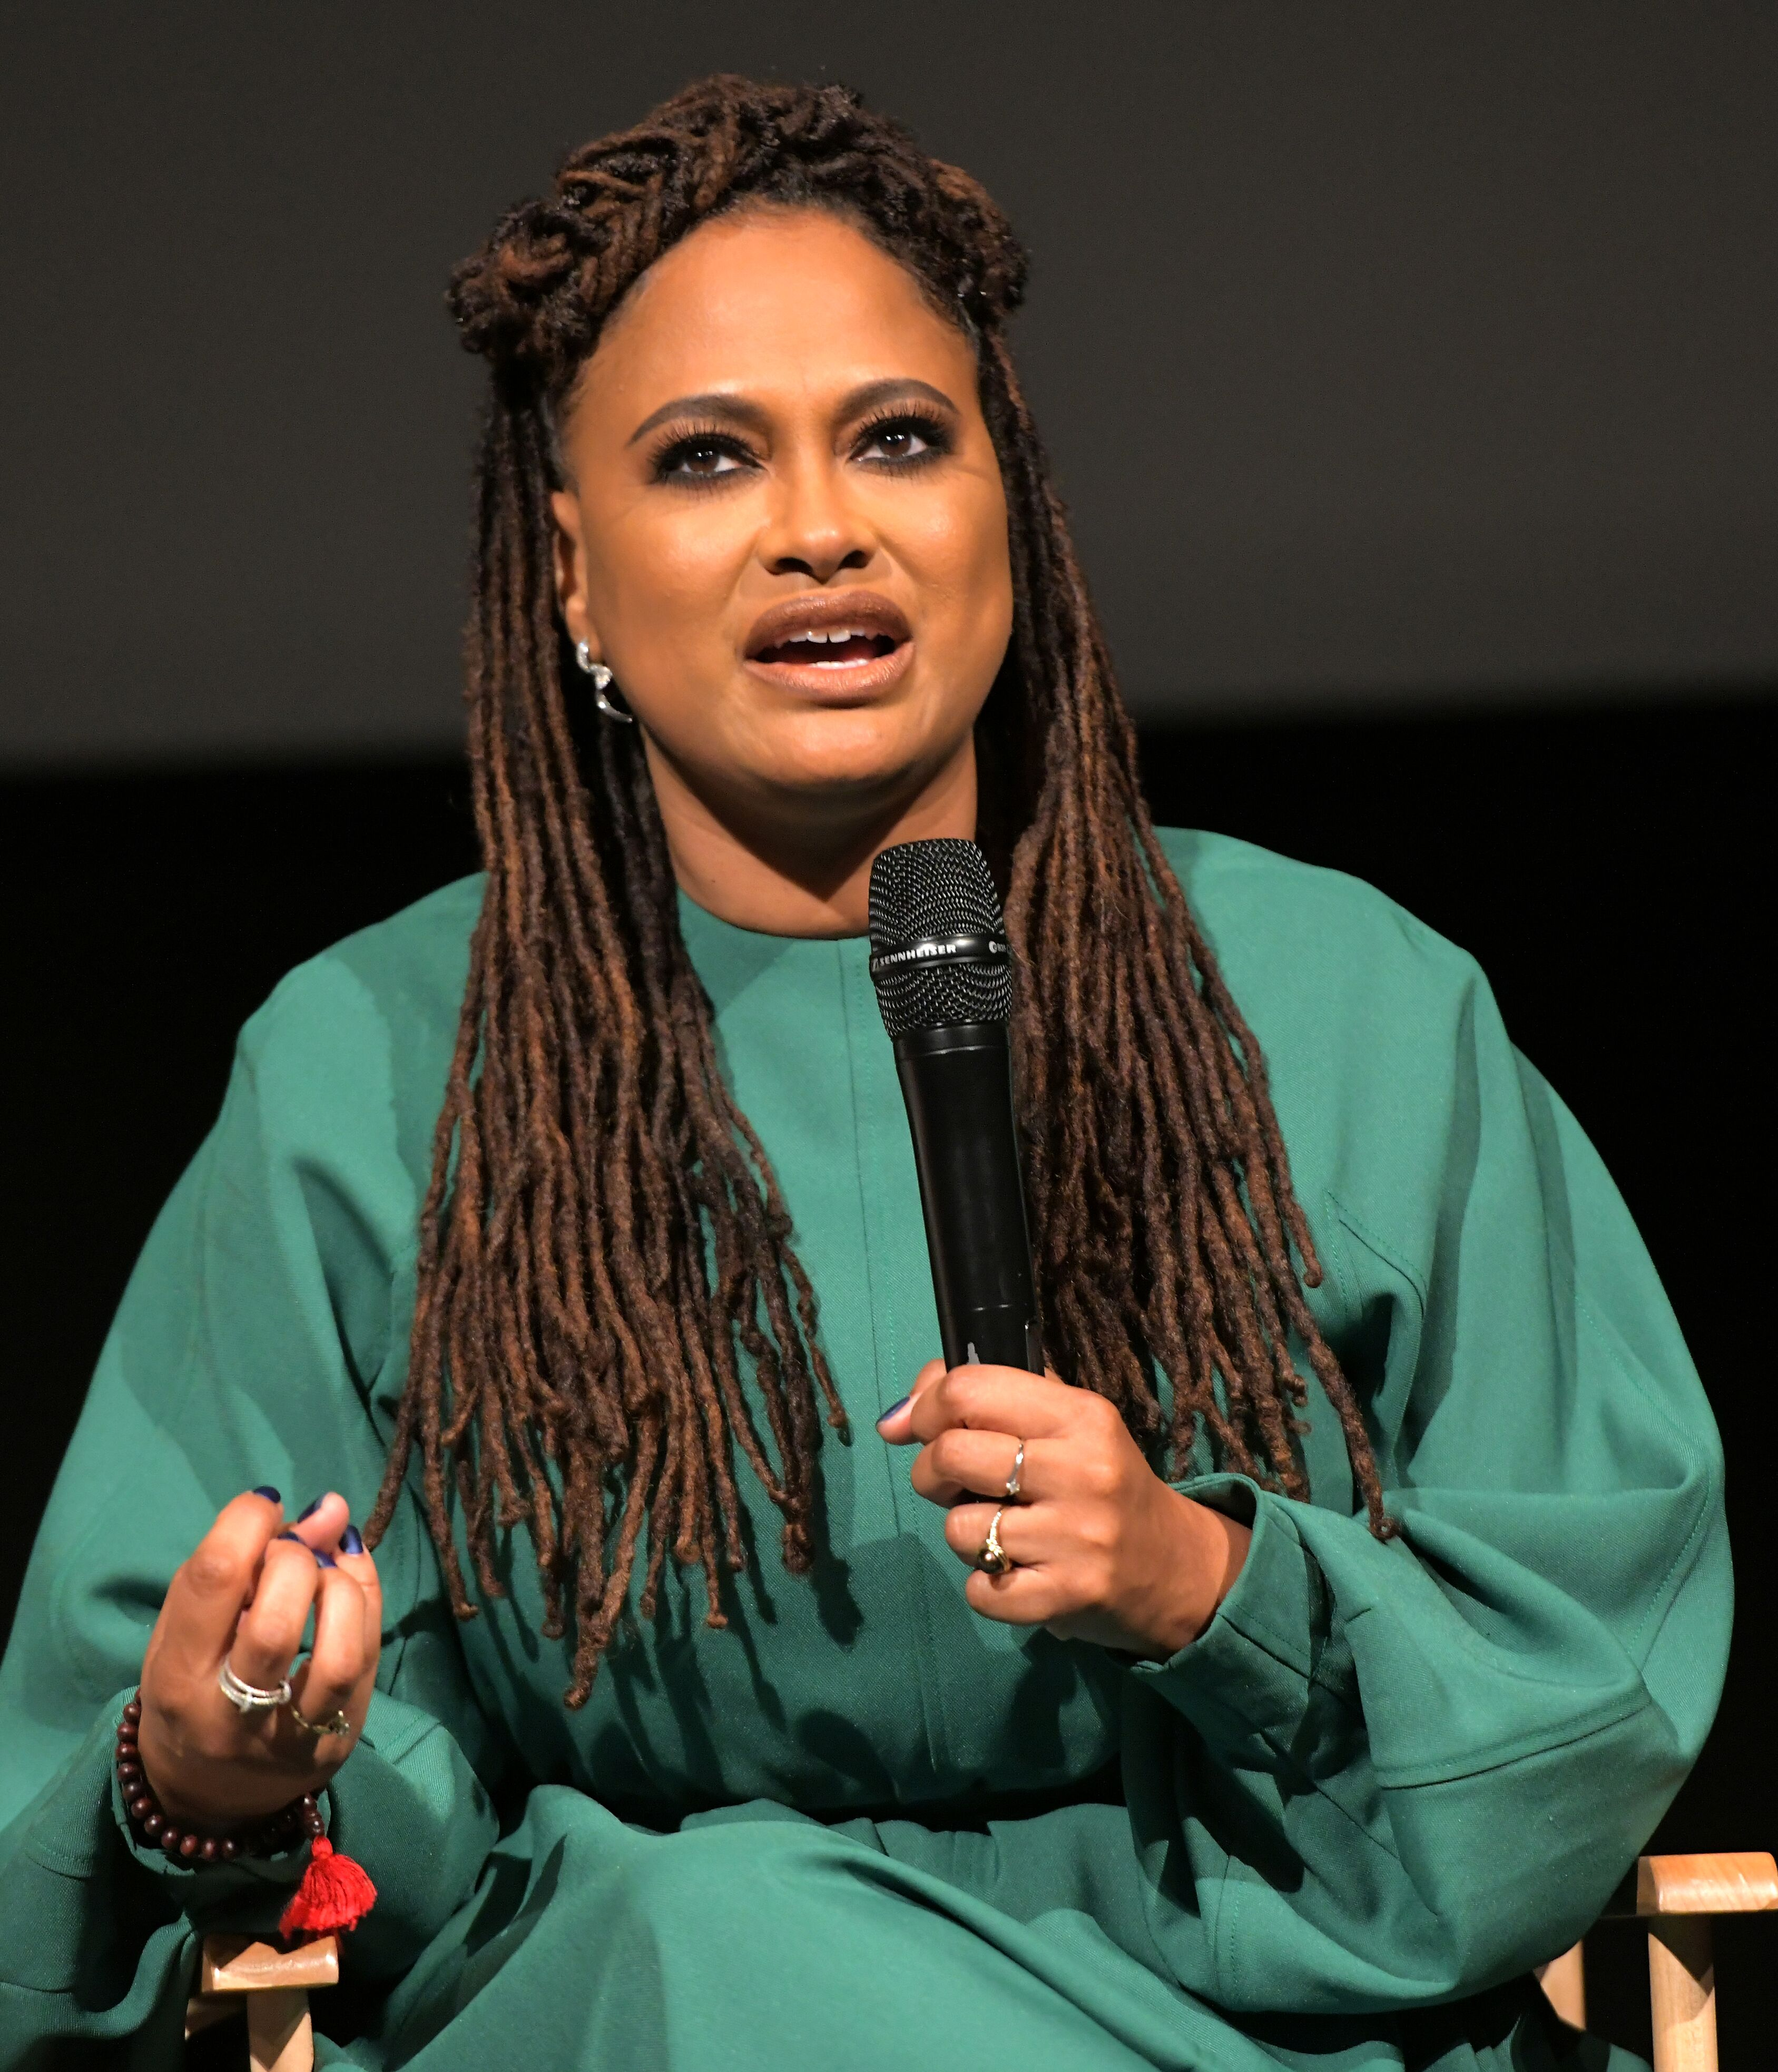 """Ava DuVernay at Netflix's """"When They See Us"""" Screening on August 11, 2019. 